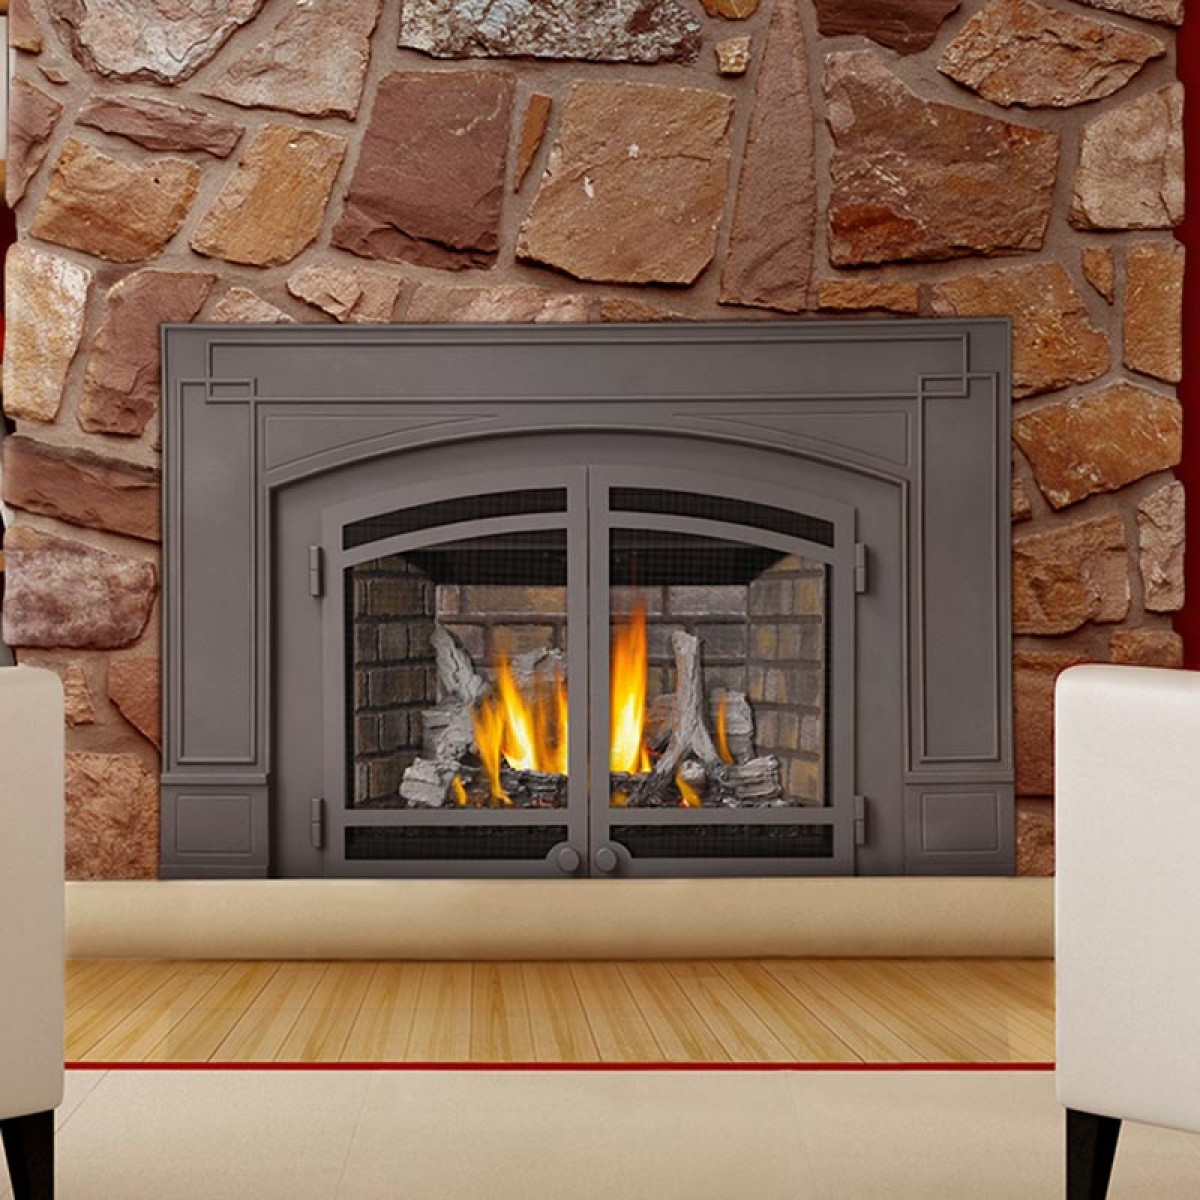 gray framed napoleon fireplace with natural stone mantel kit matched with wooden floor plus white sofa for family room decor ideas